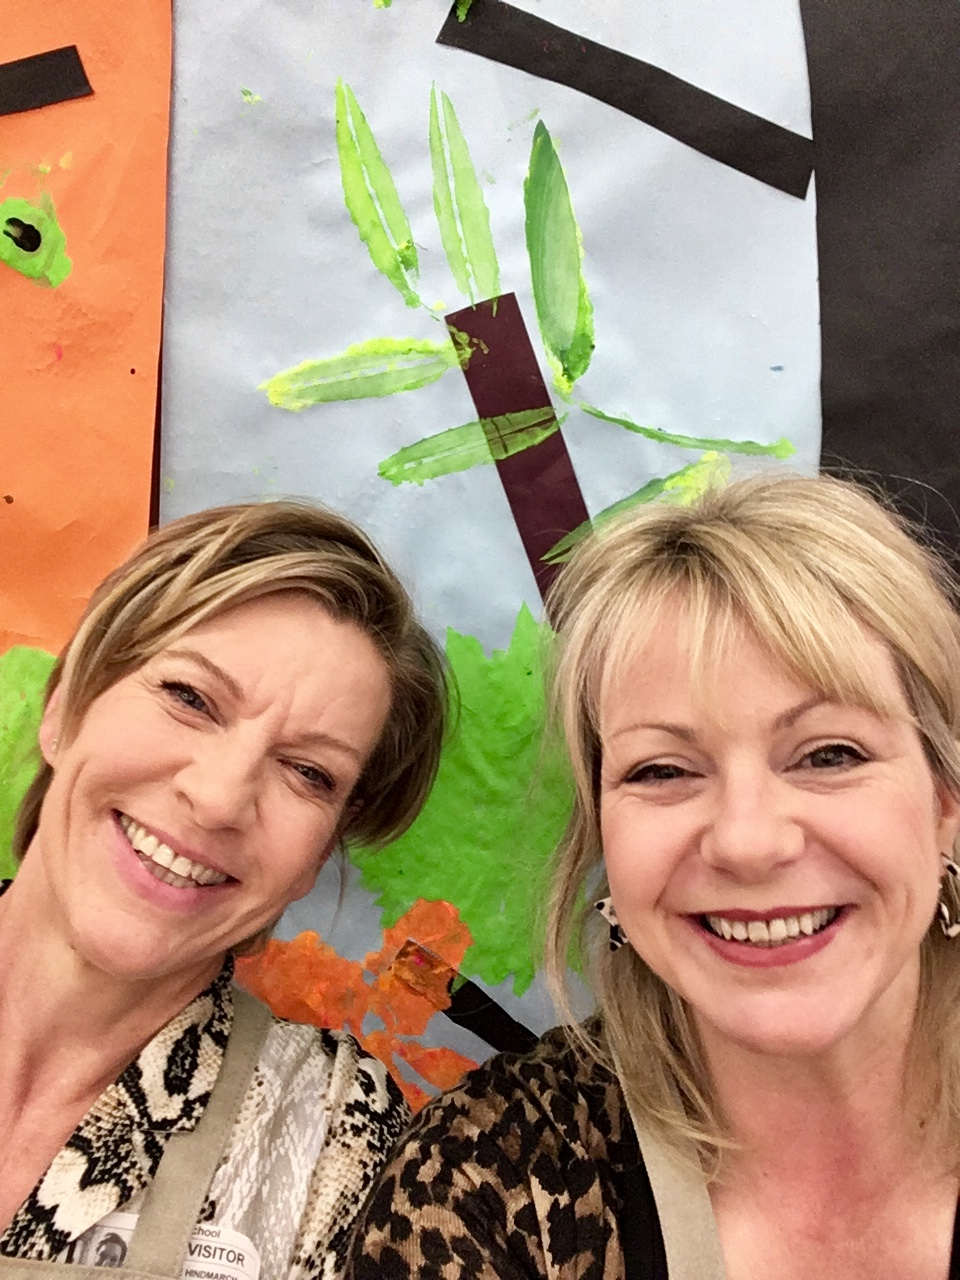 Max & Jane at Heltwate Special School, Peterborough. Artsists in Residence 2019